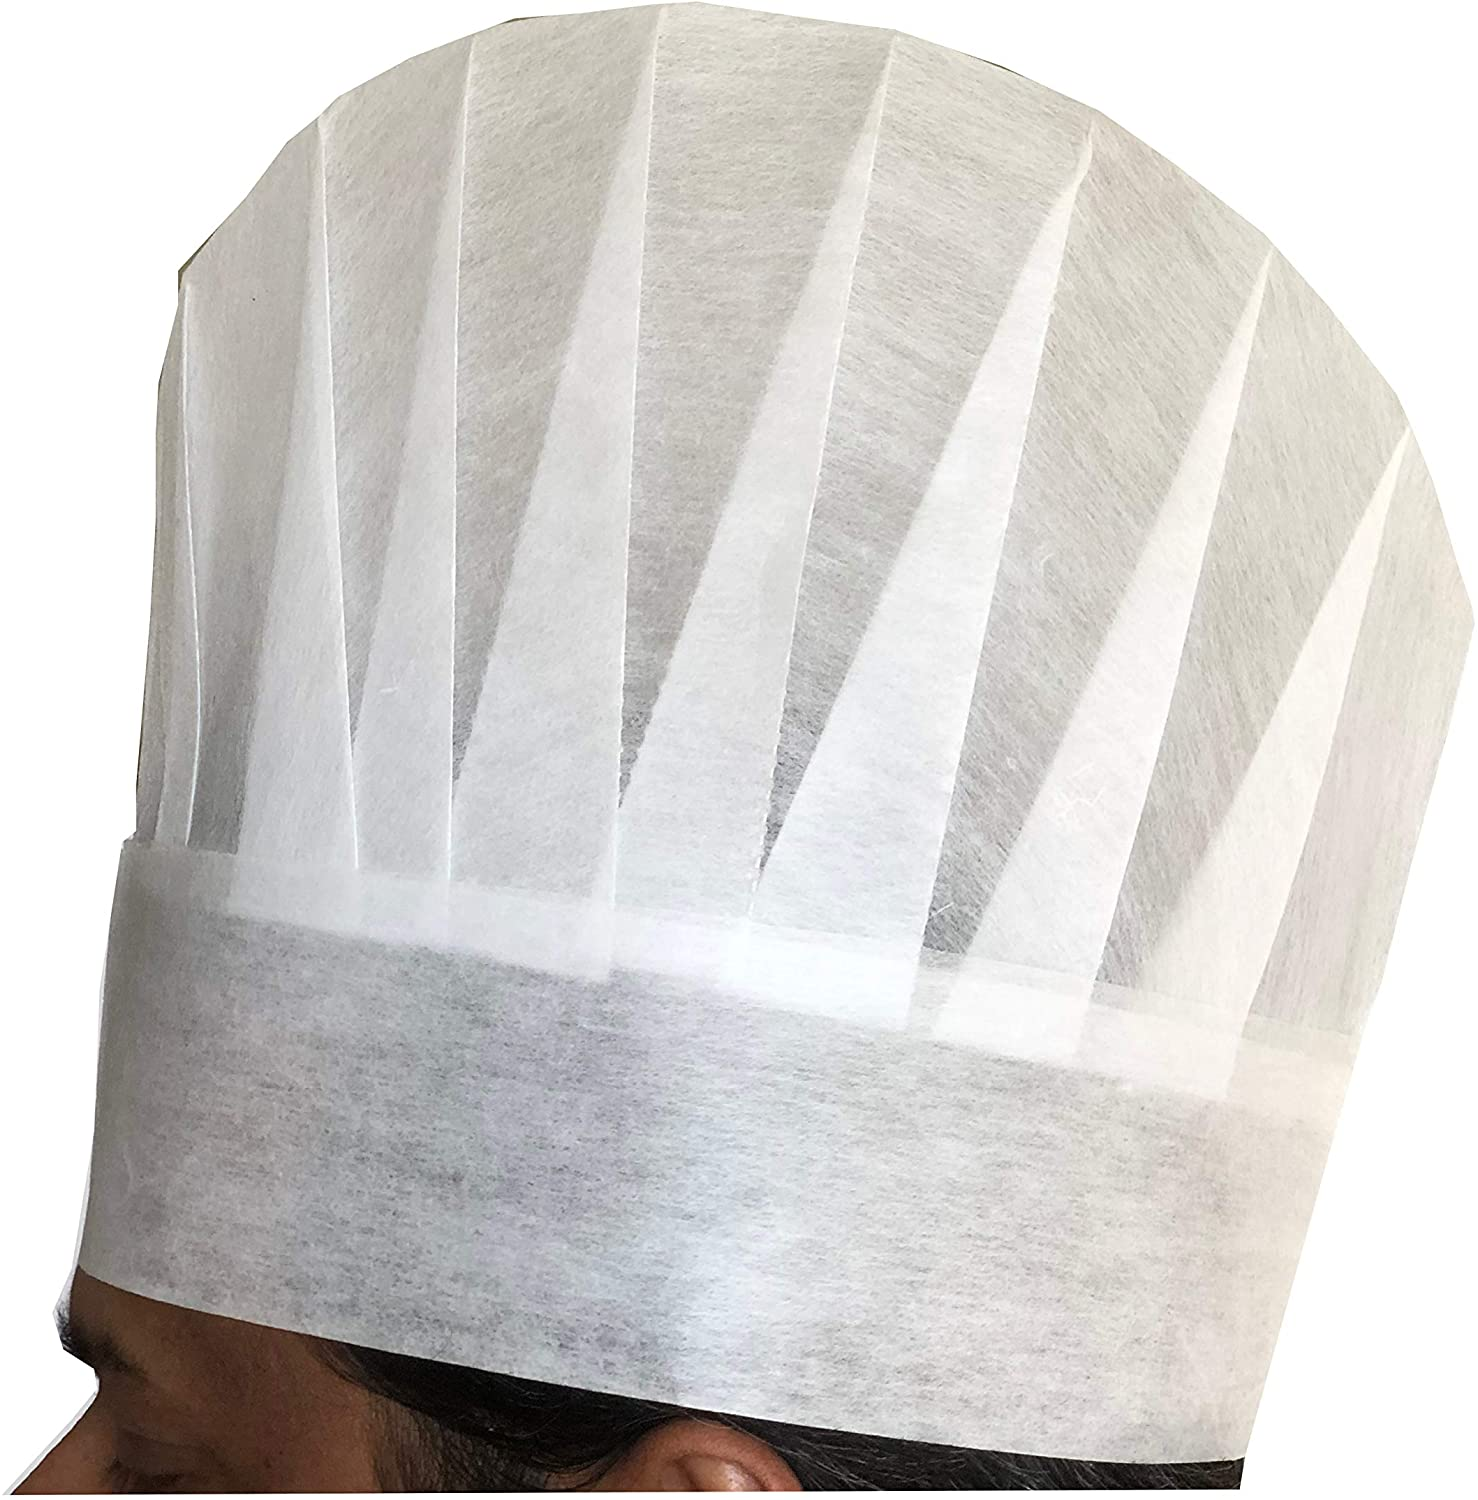 Chef Hats 25 Pack Disposable White Poly-Viscose Non-Woven Oval Top Toque Traditional European Style Chef Caps